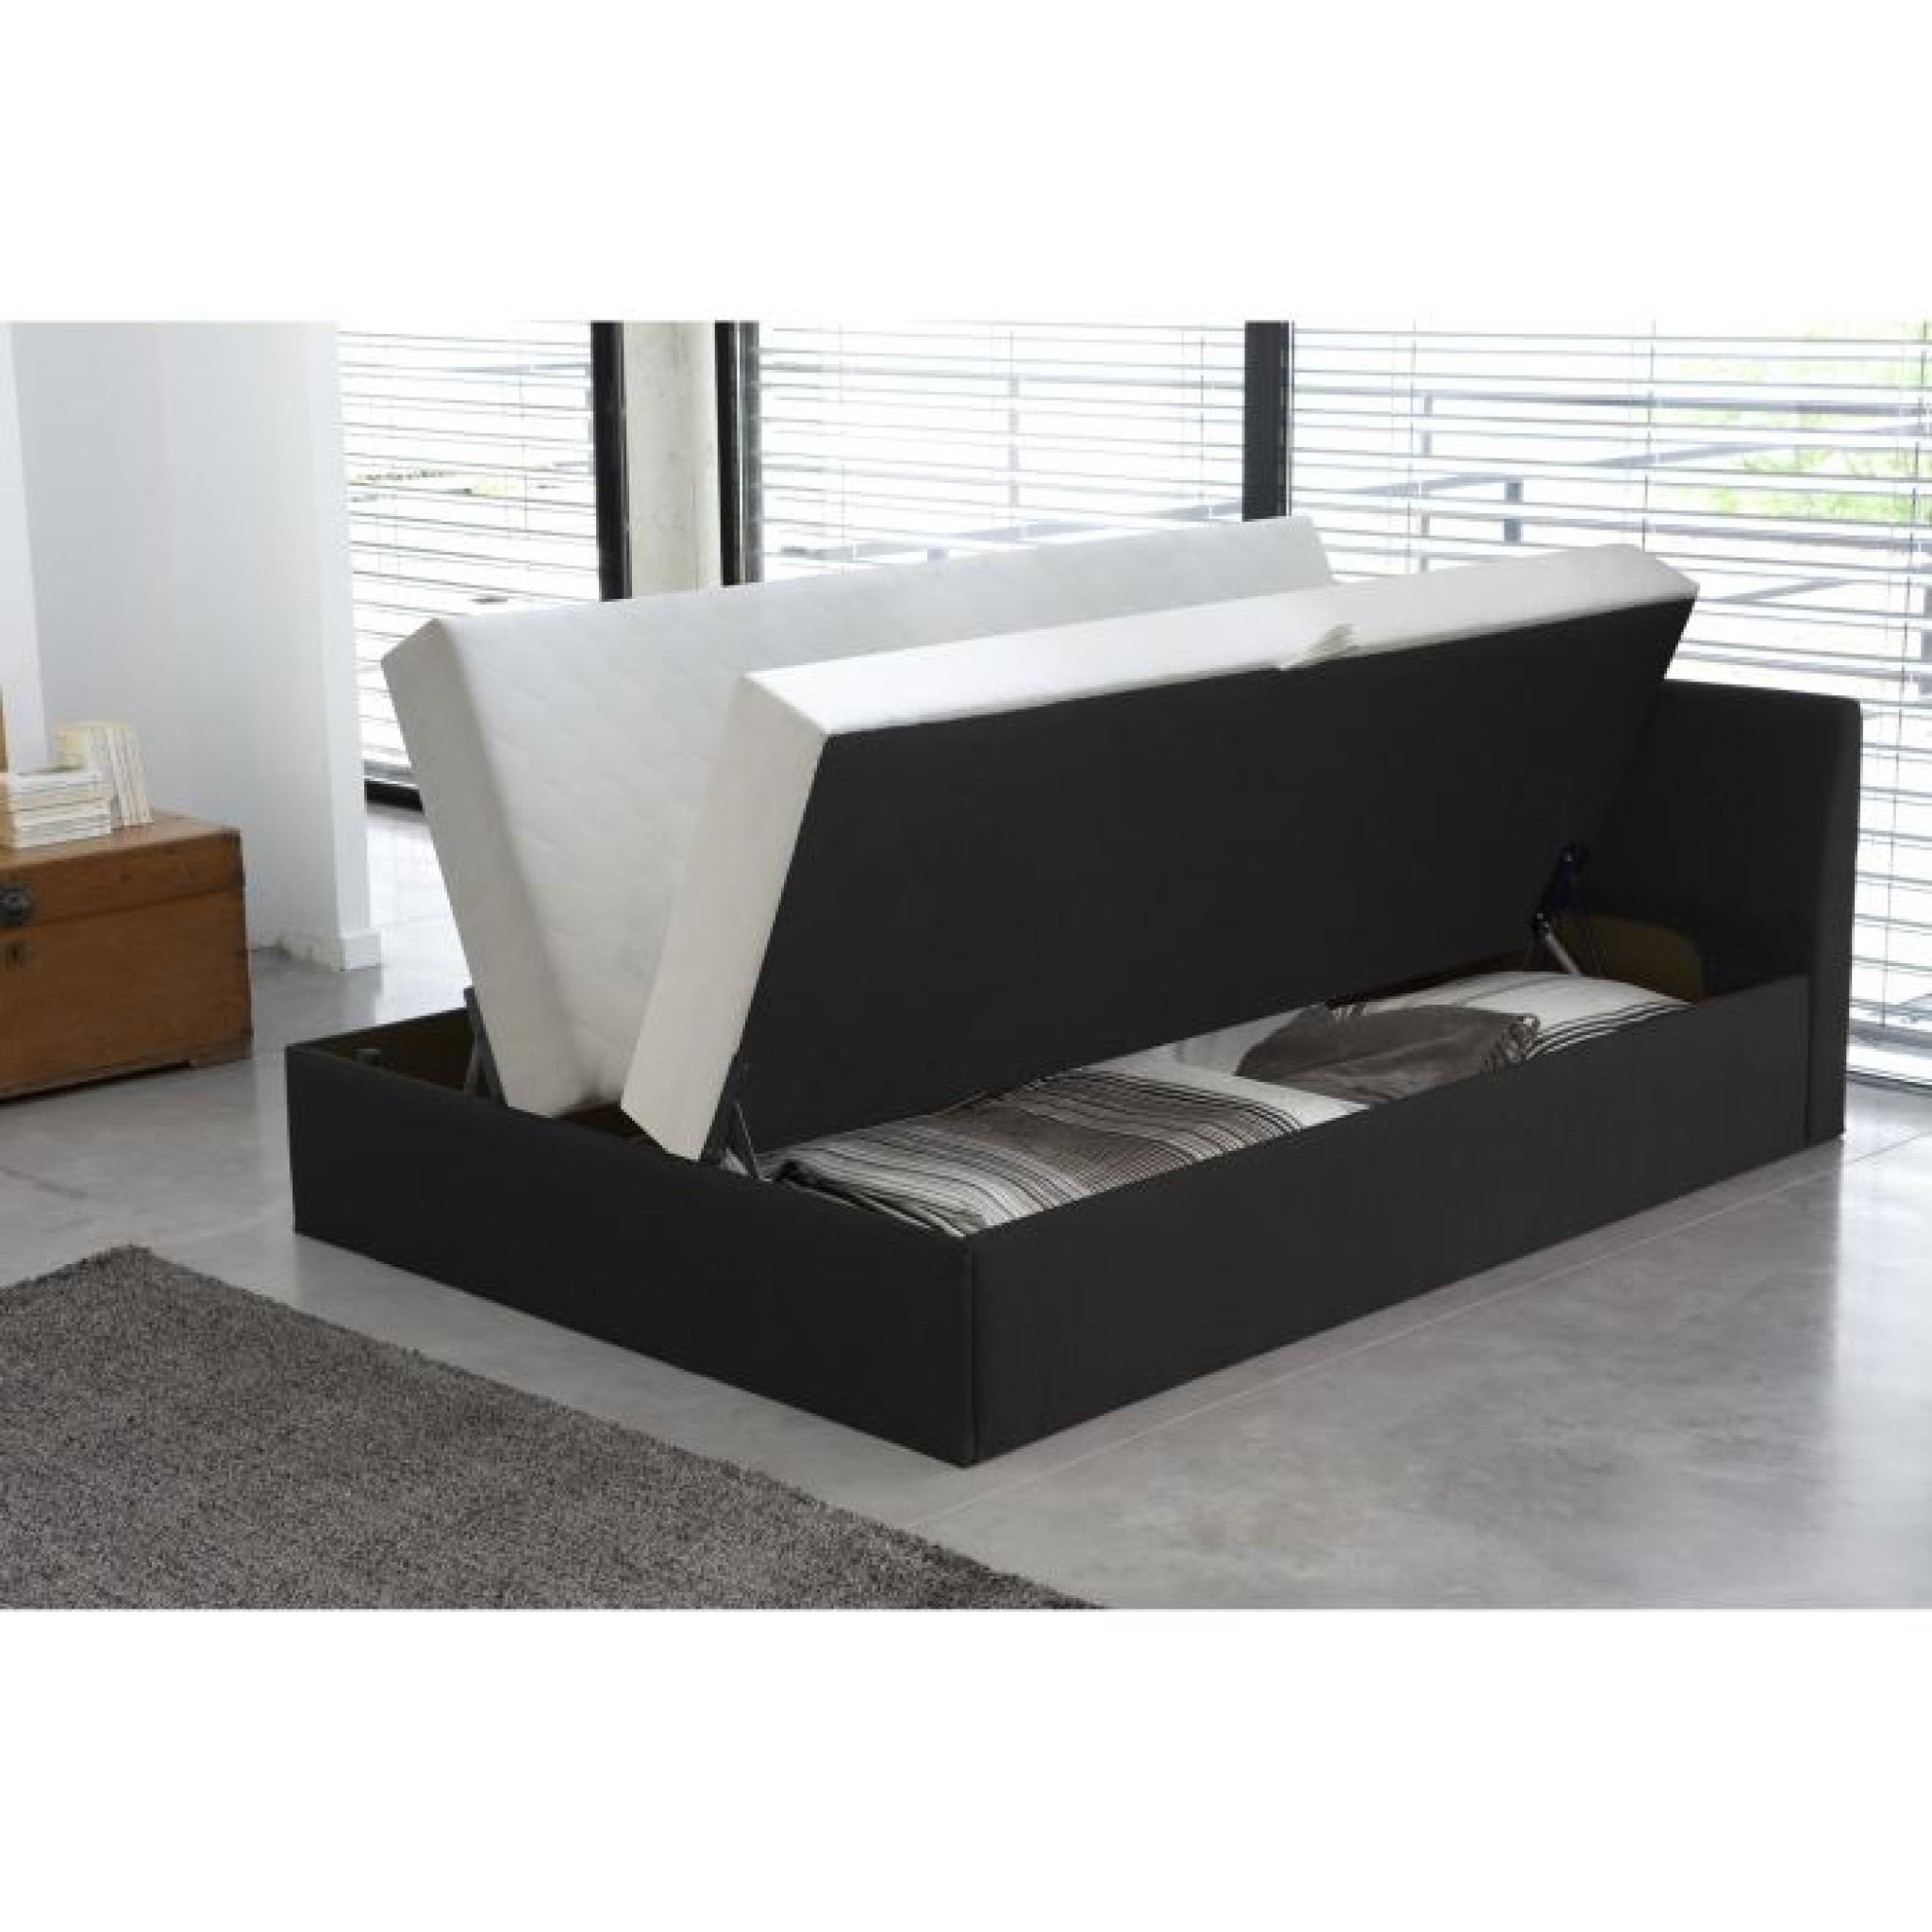 cosmo lit complet avec coffre noir 140x190 cm achat. Black Bedroom Furniture Sets. Home Design Ideas